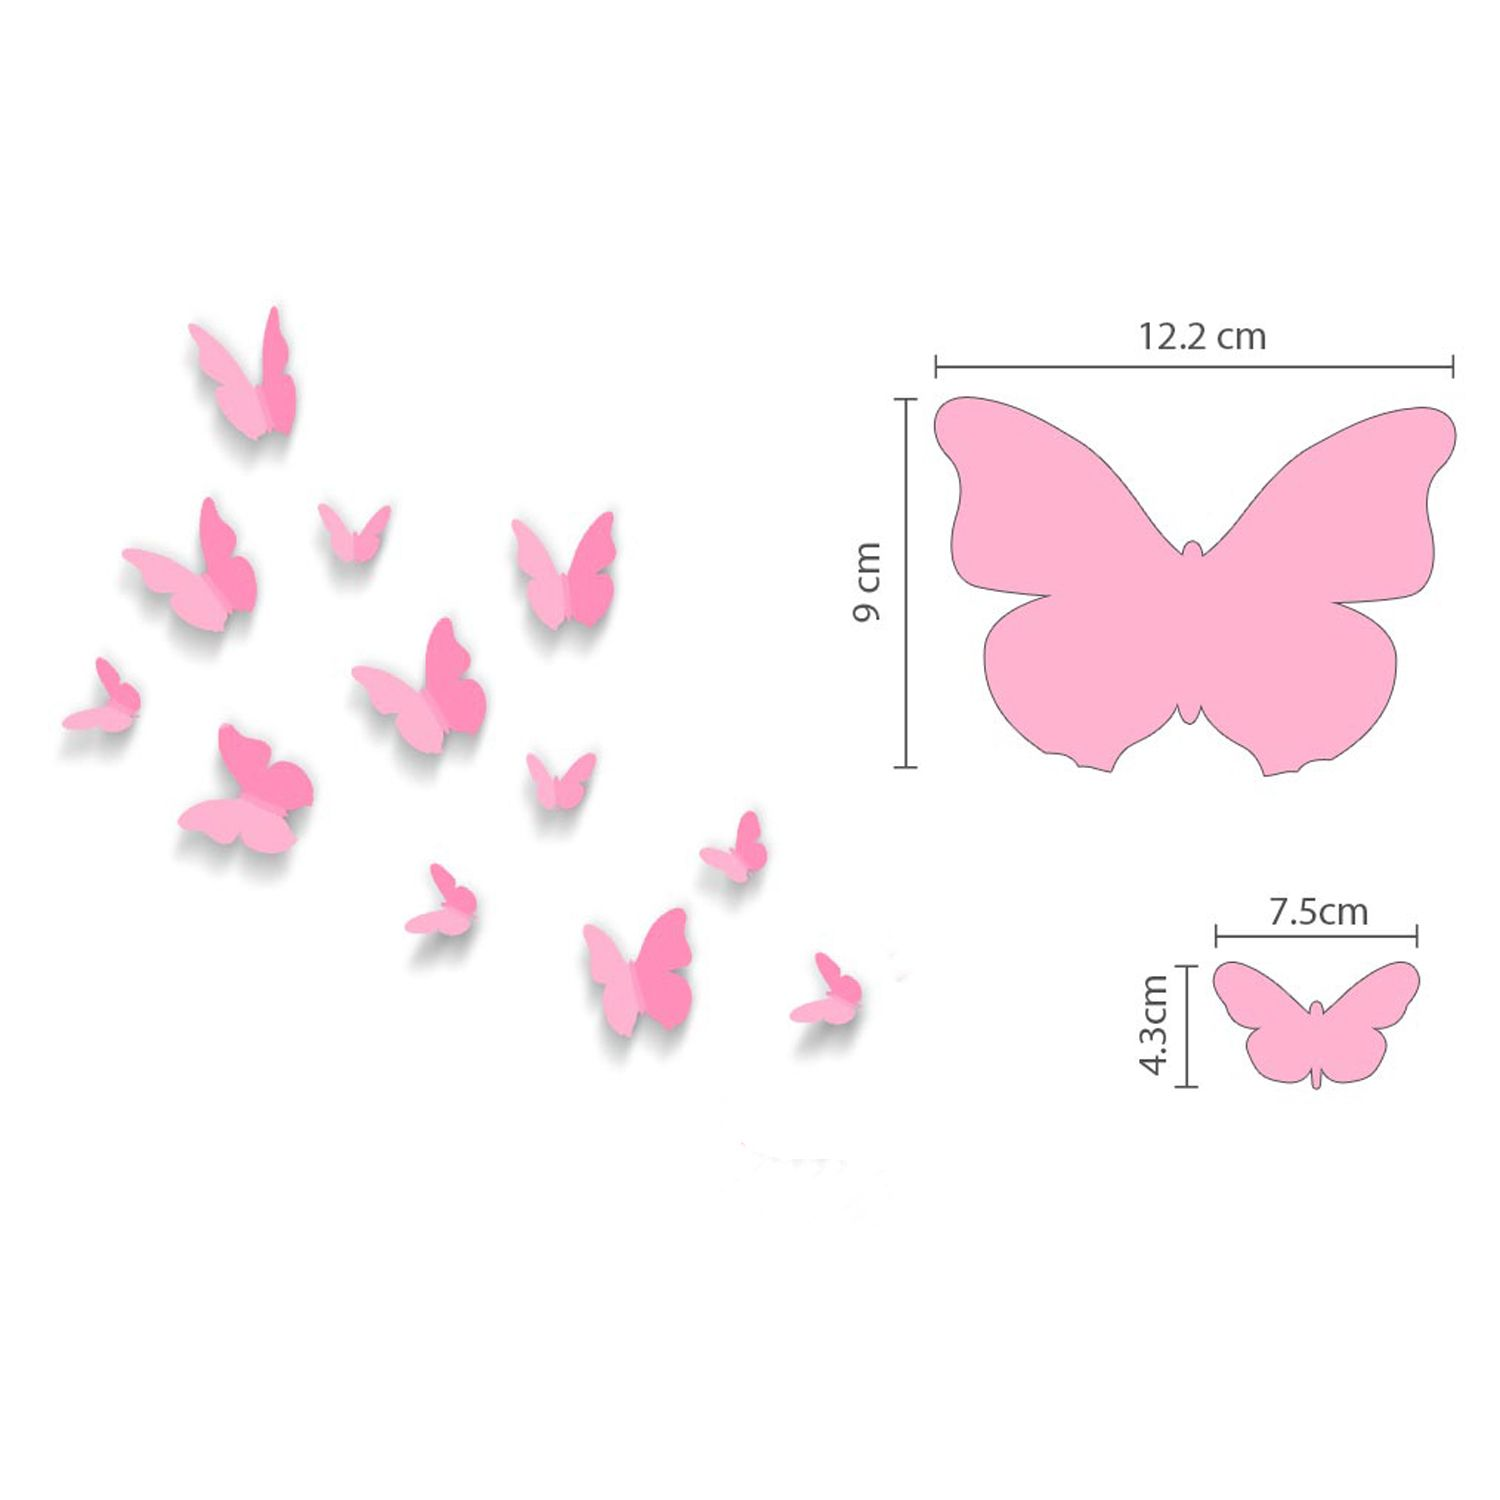 3D Butterfly Pink and Swarovski 2.9mm Clear Crystals Wall Sticker